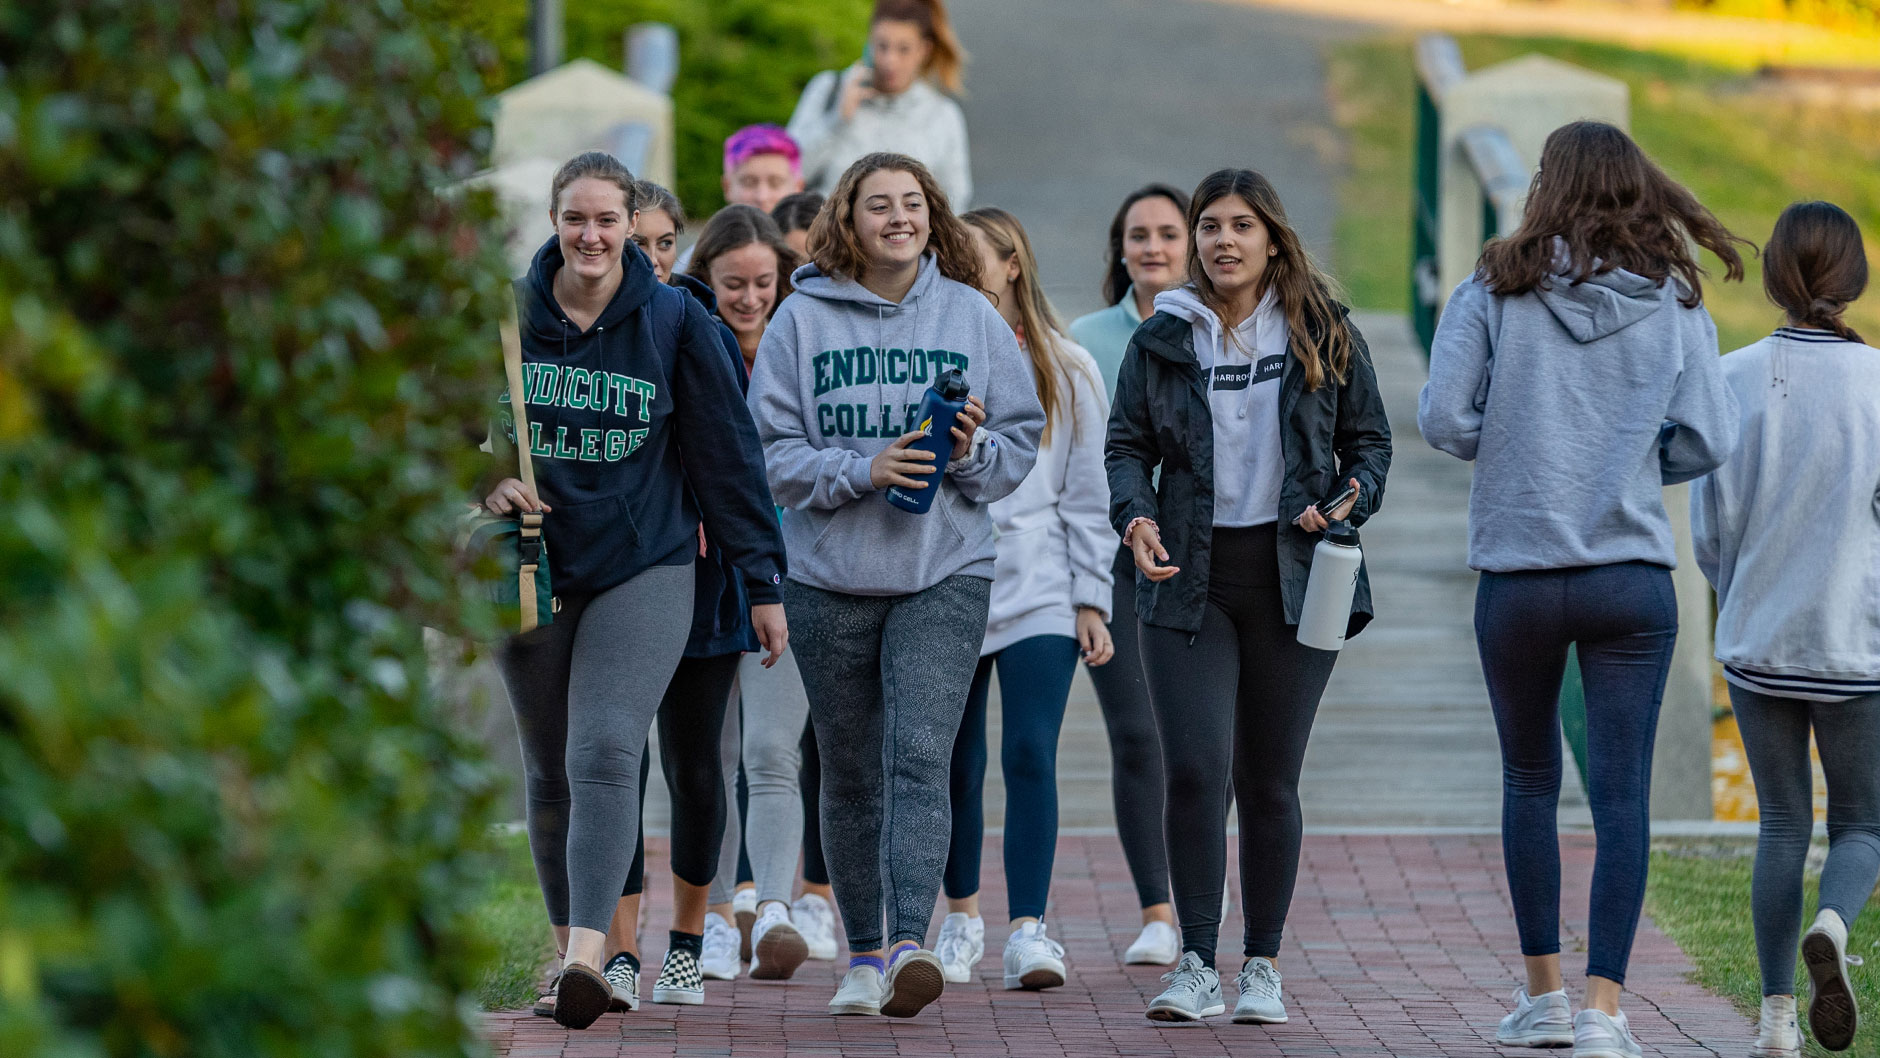 Students walking on the Endicott College campus